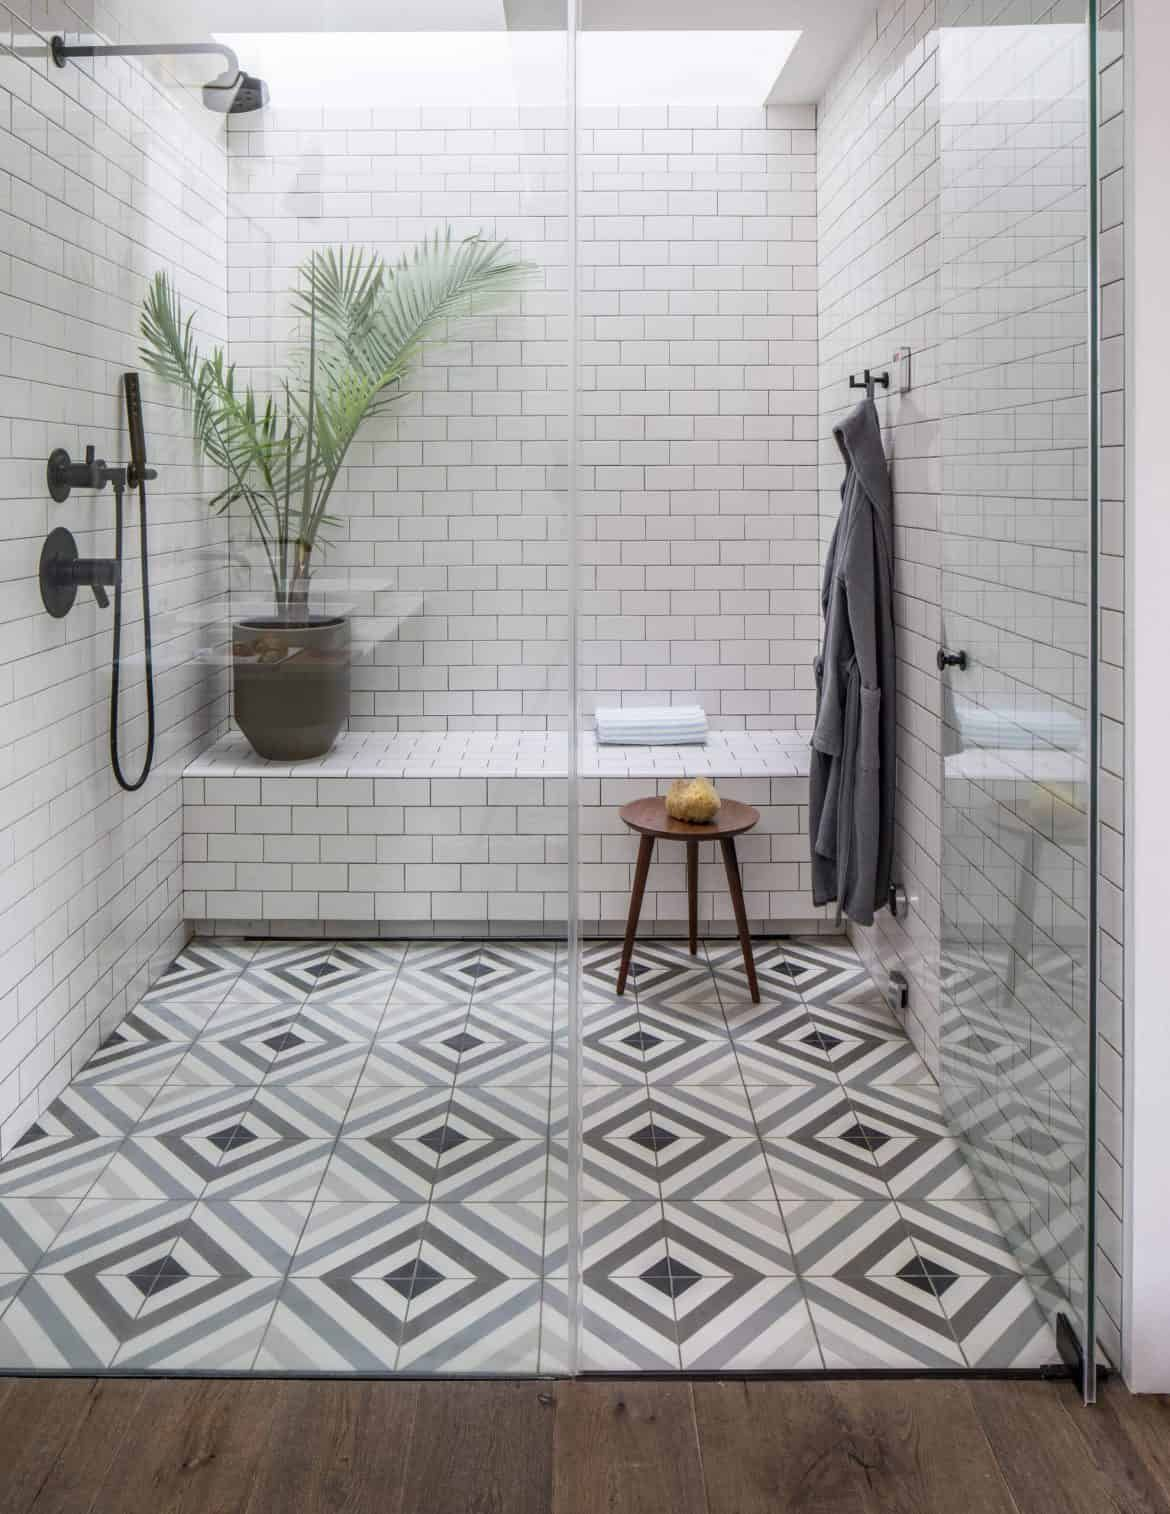 44 Modern Shower Tile Ideas And Designs 2020 Edition In 2020 Modern Shower Tile Tile Bathroom Tile Remodel